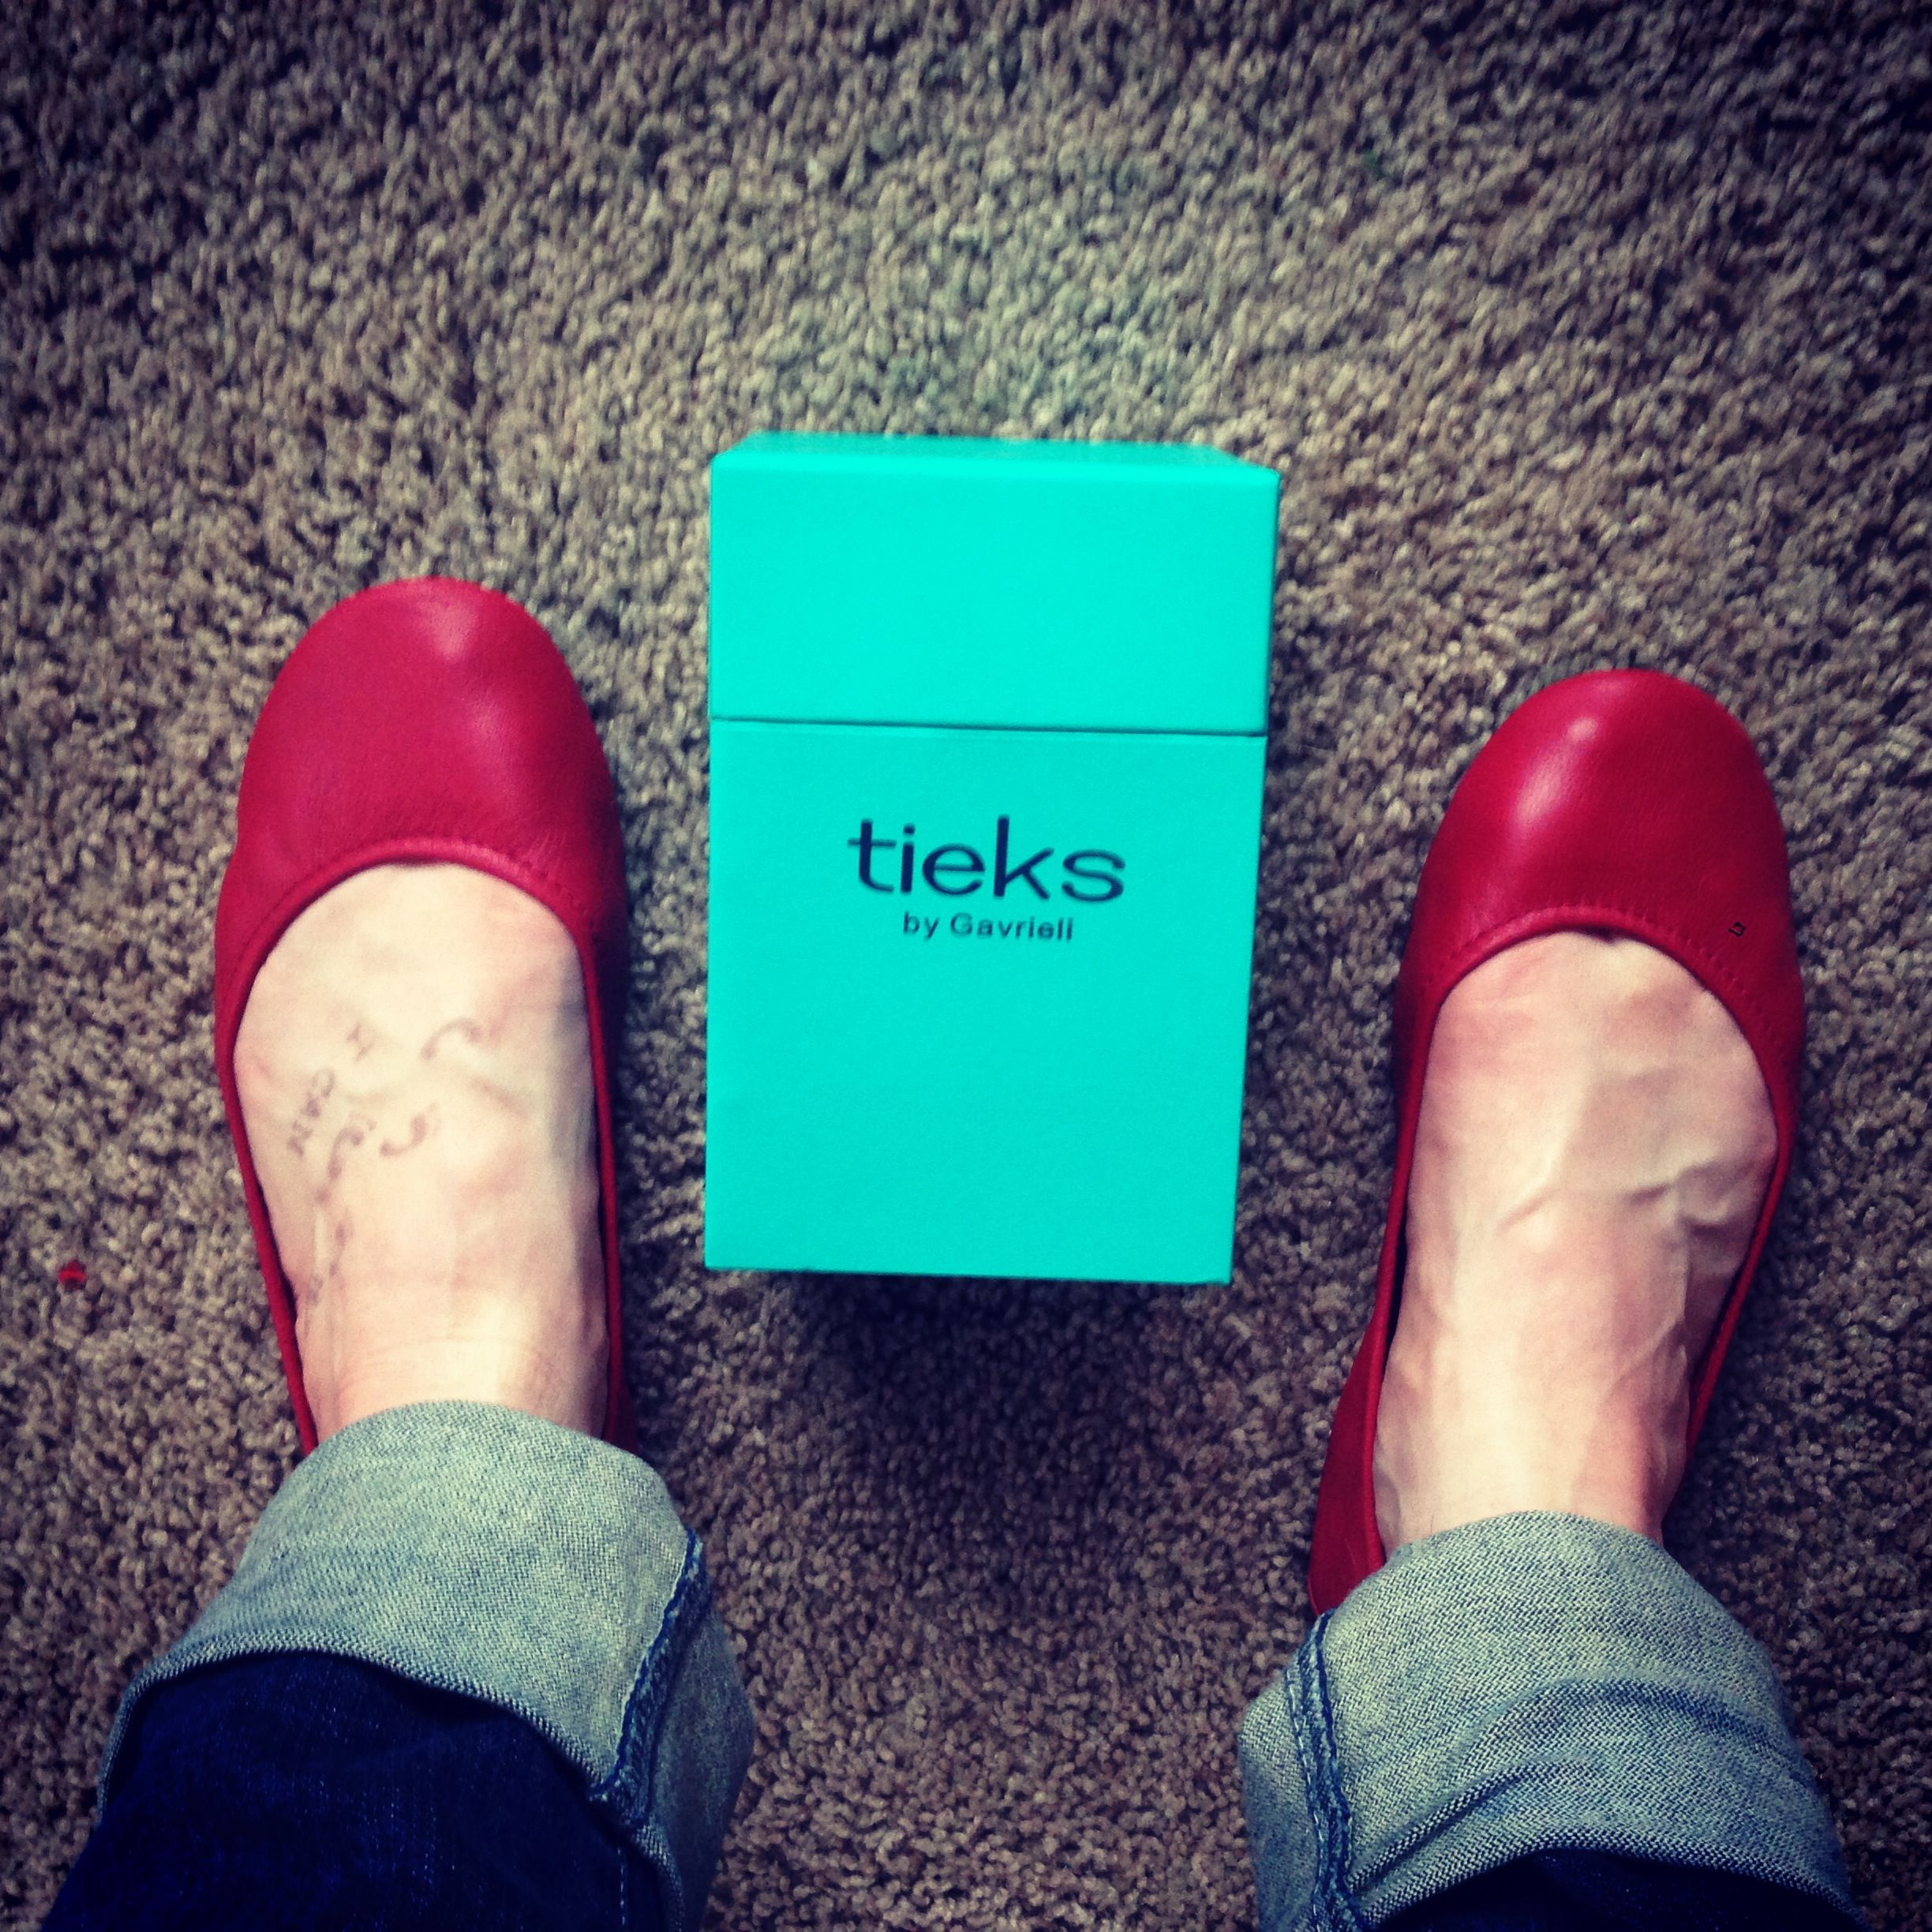 What The Fuss Tieks Review Country Mouse Confessions